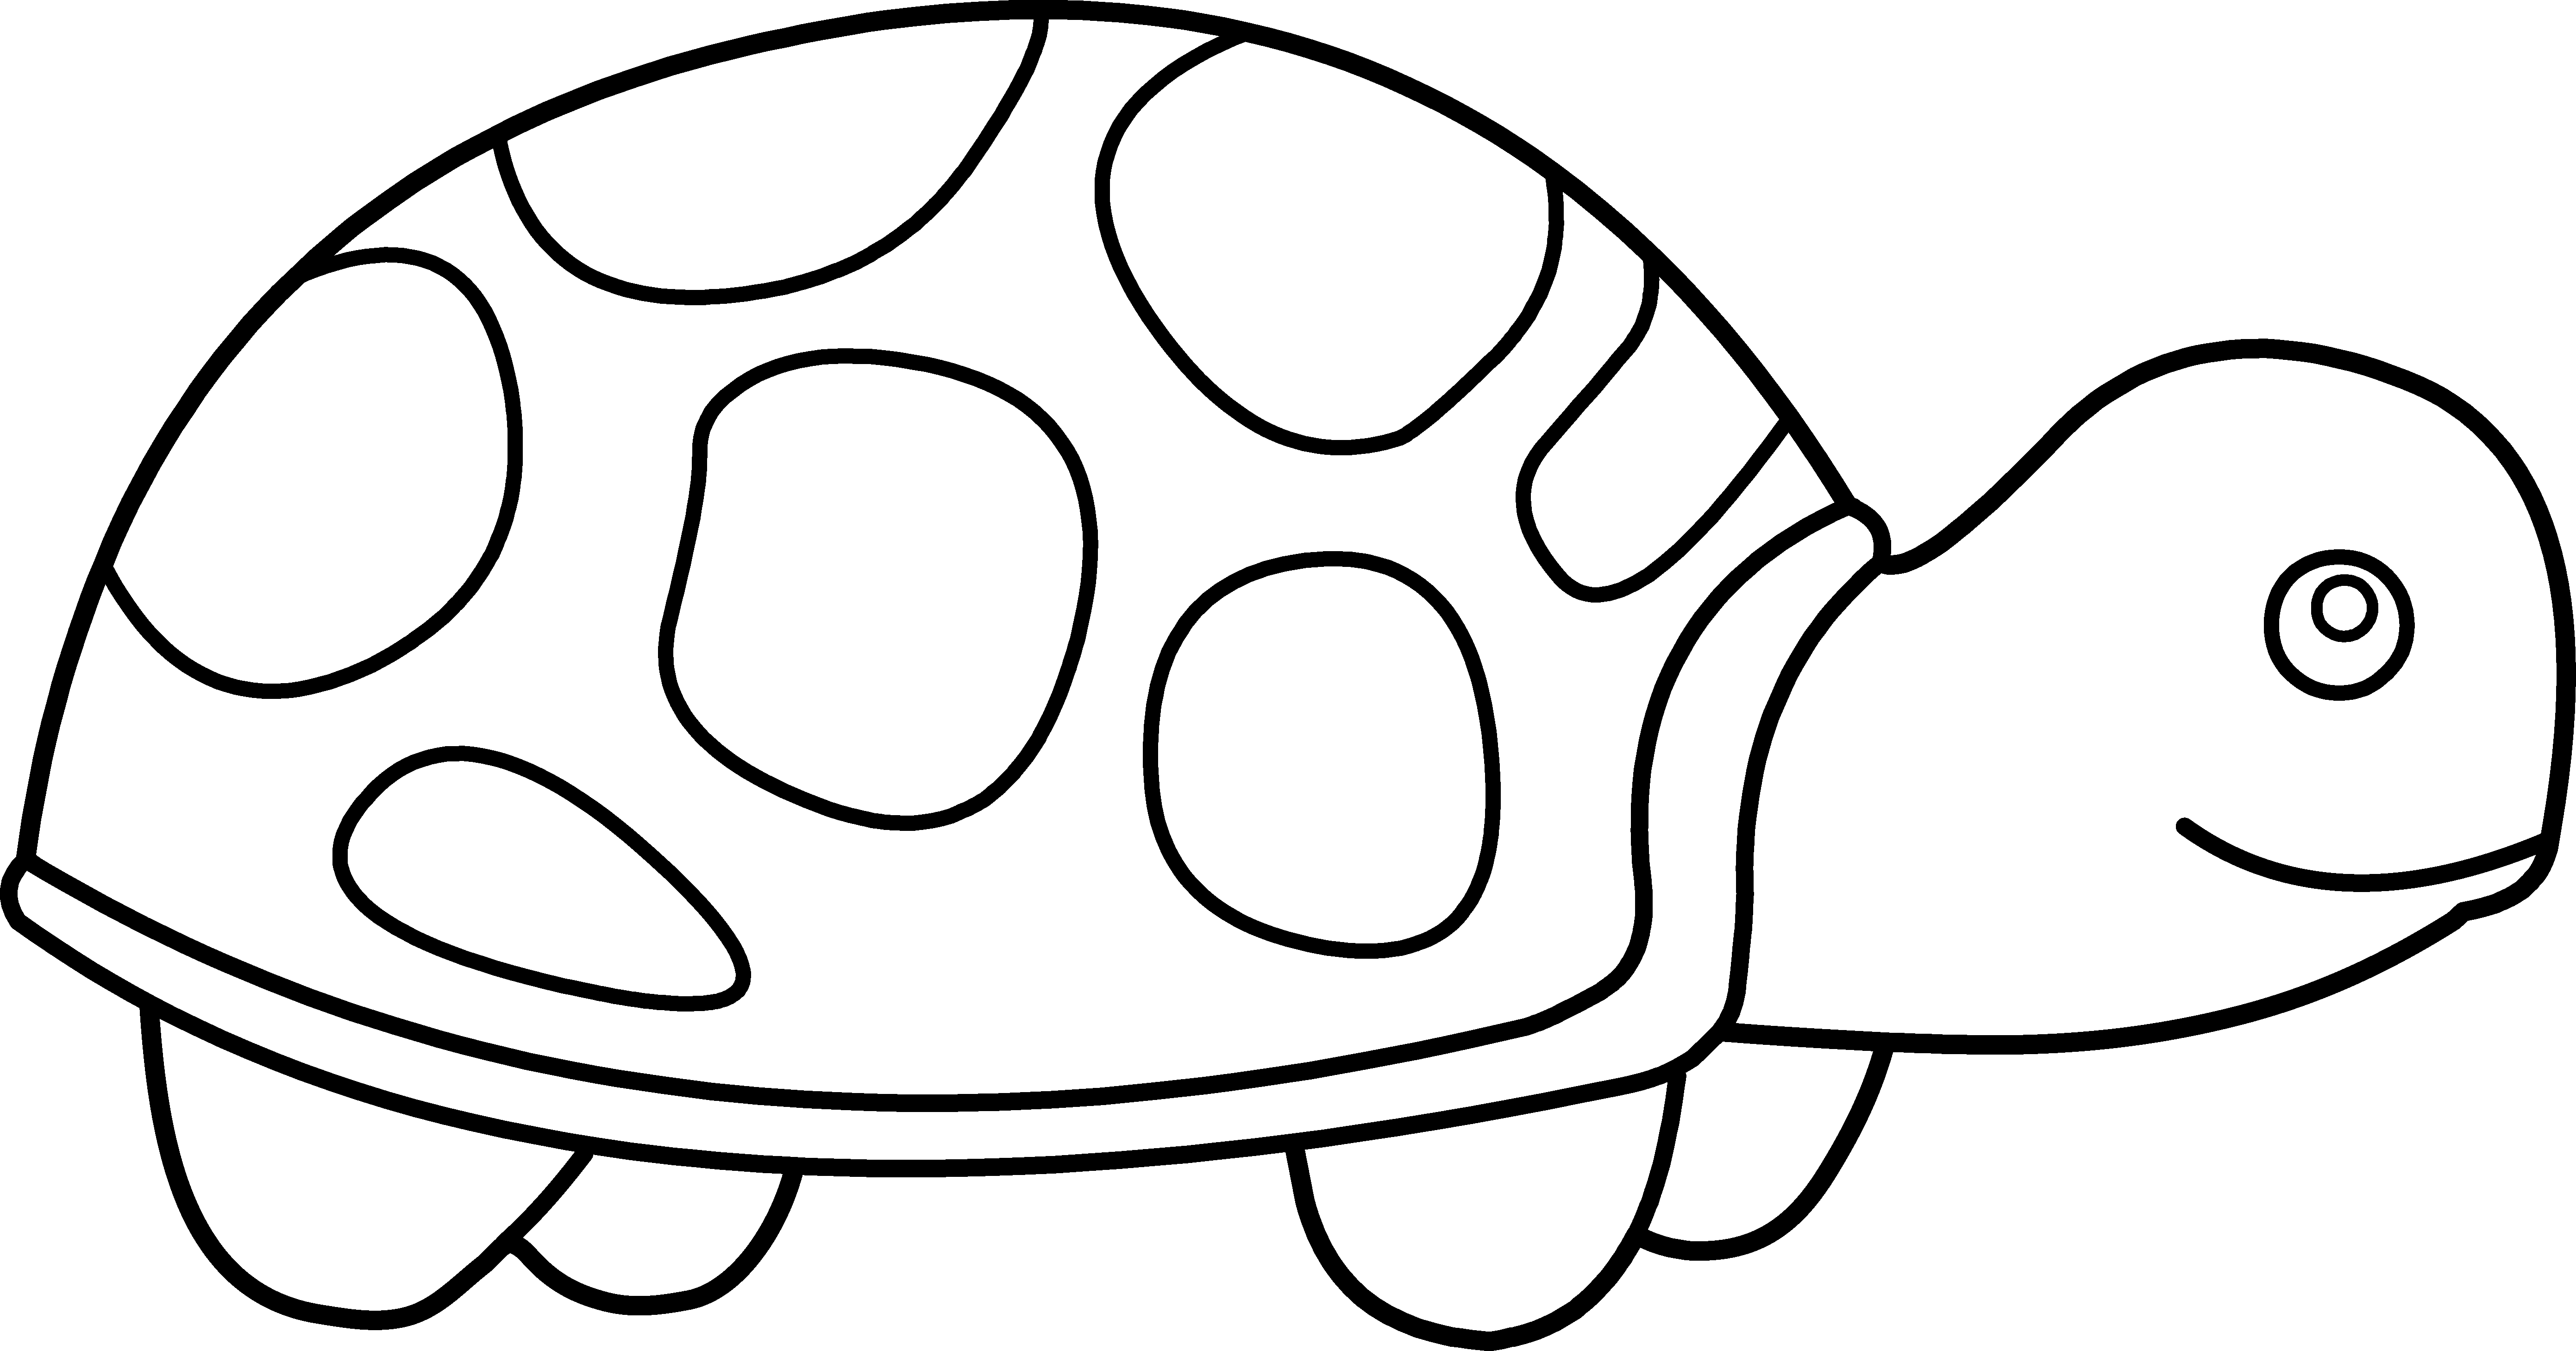 Math Clip Art Black And White Site Clipart Great Cute Turtle Coloring